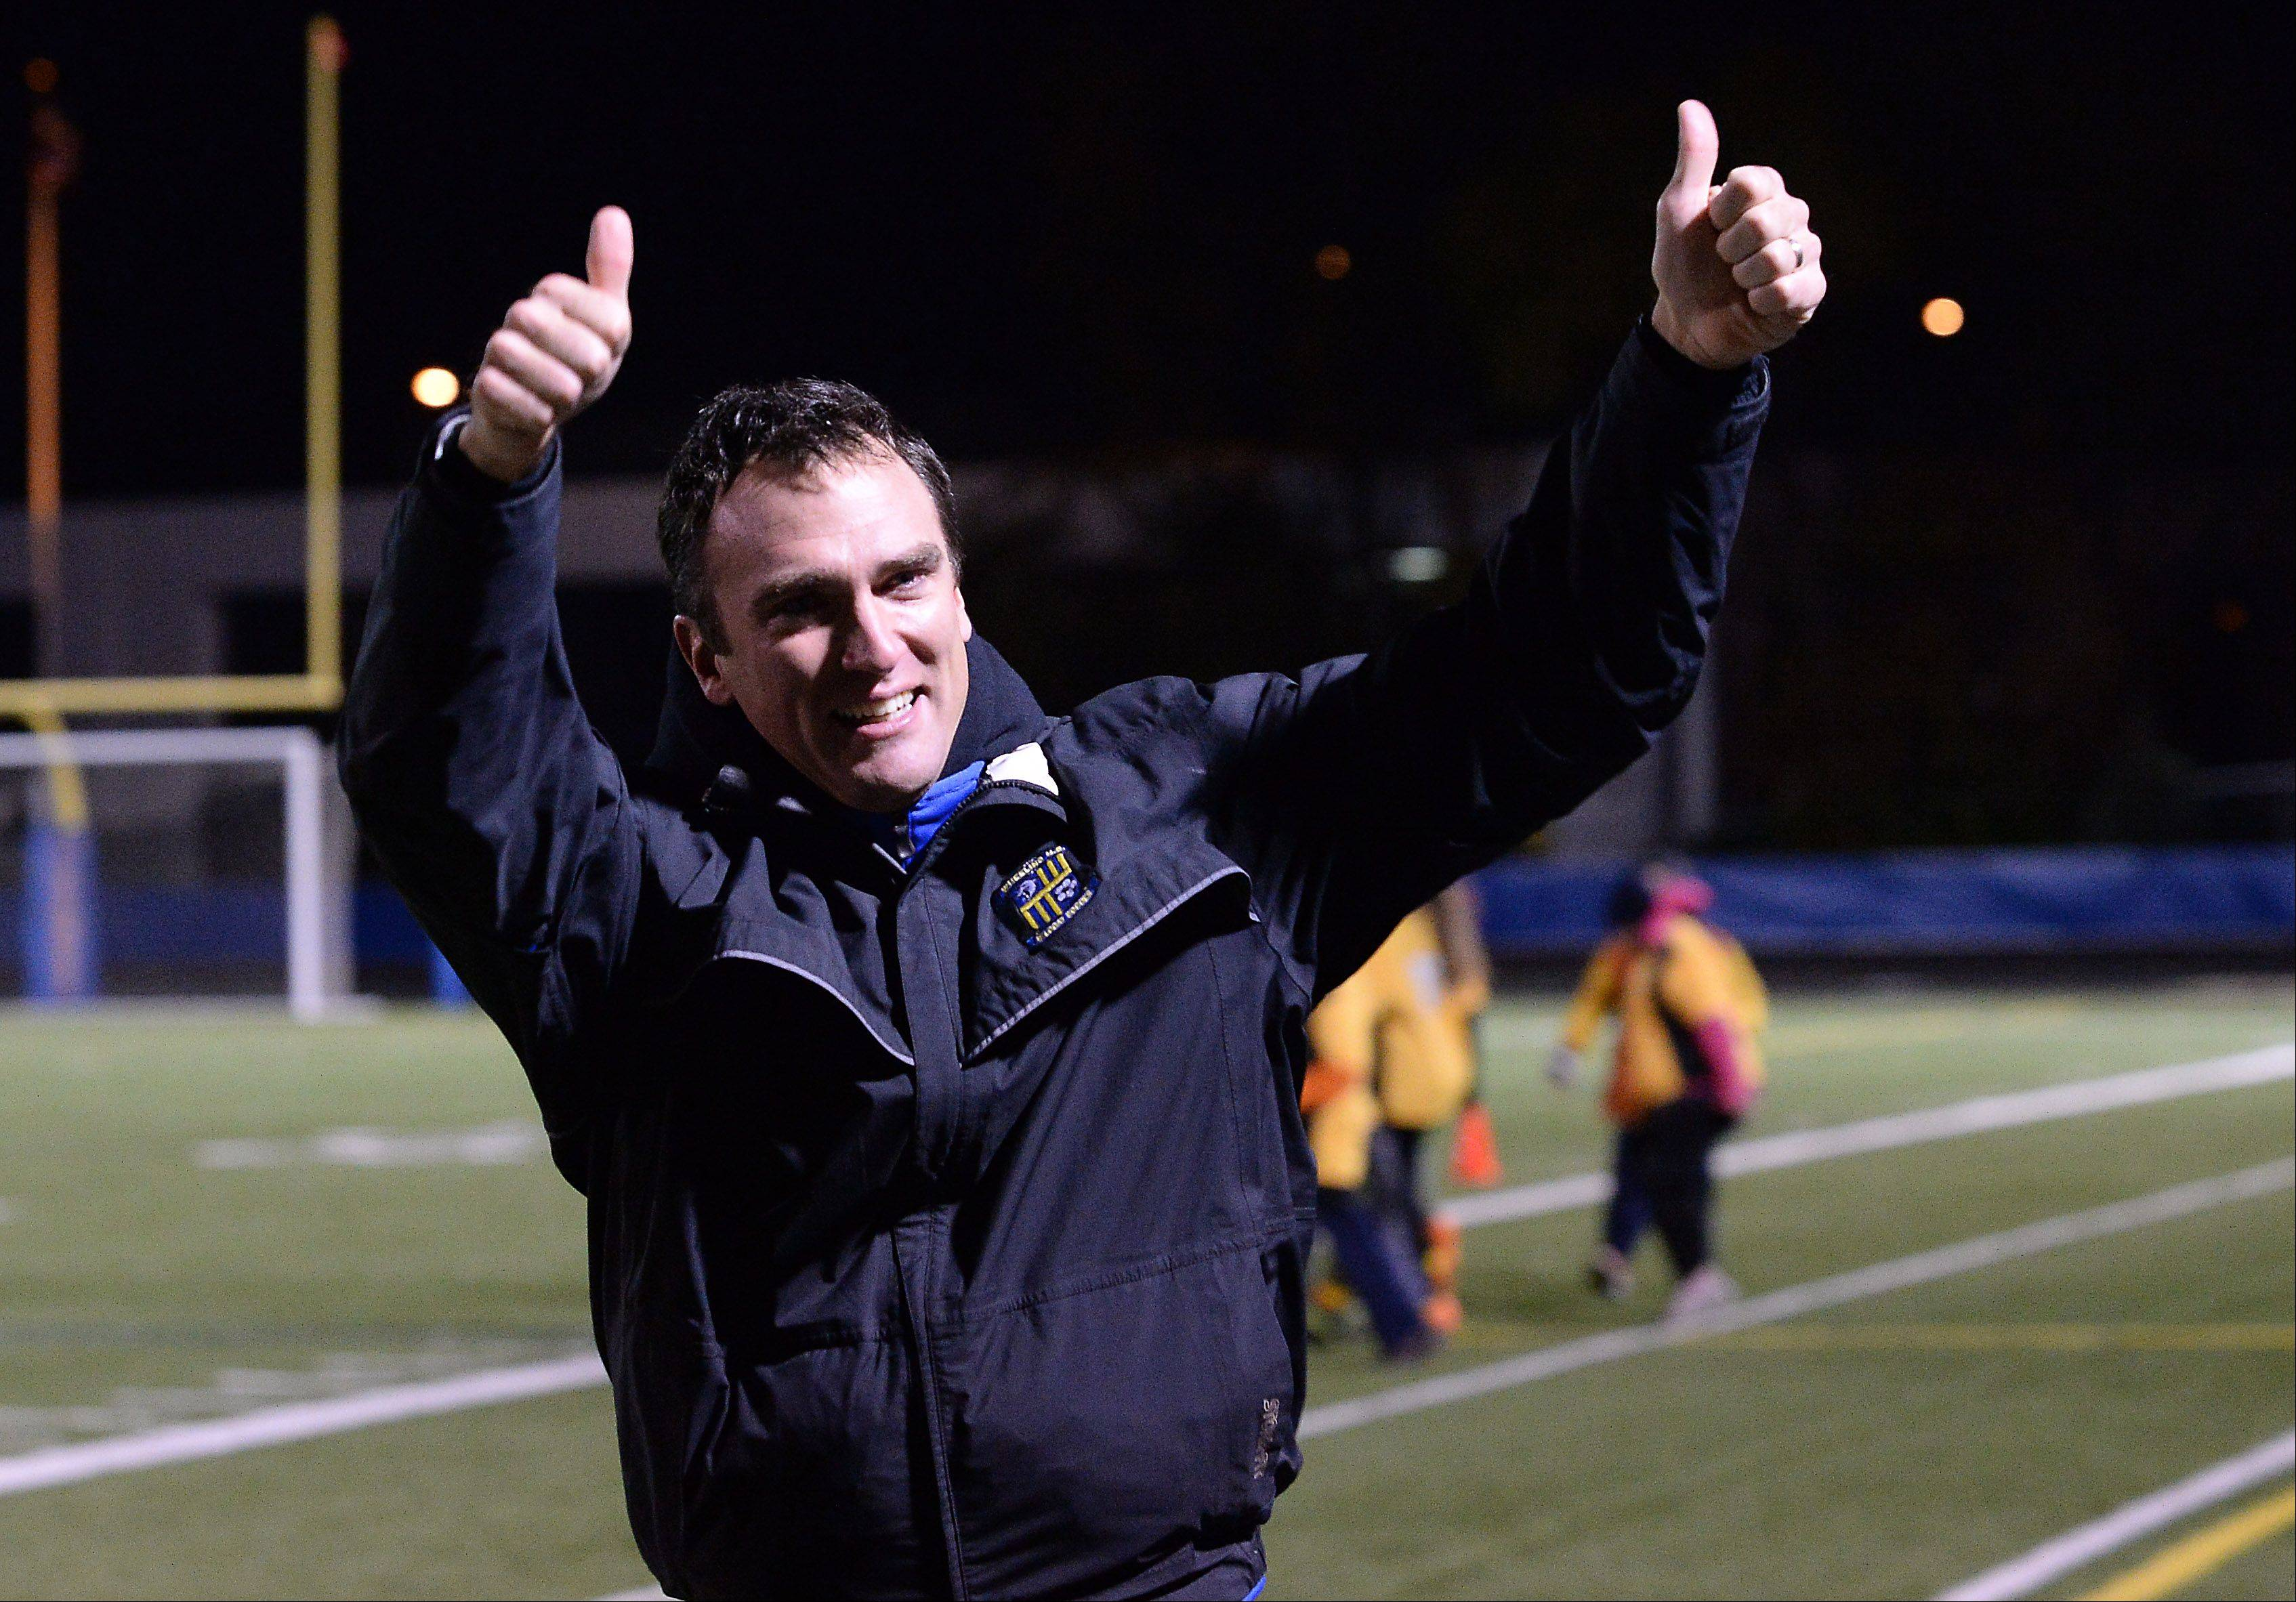 Wheeling's coach Ed Uhrik gives thumbs up to the fans after their victory over Lake Park.